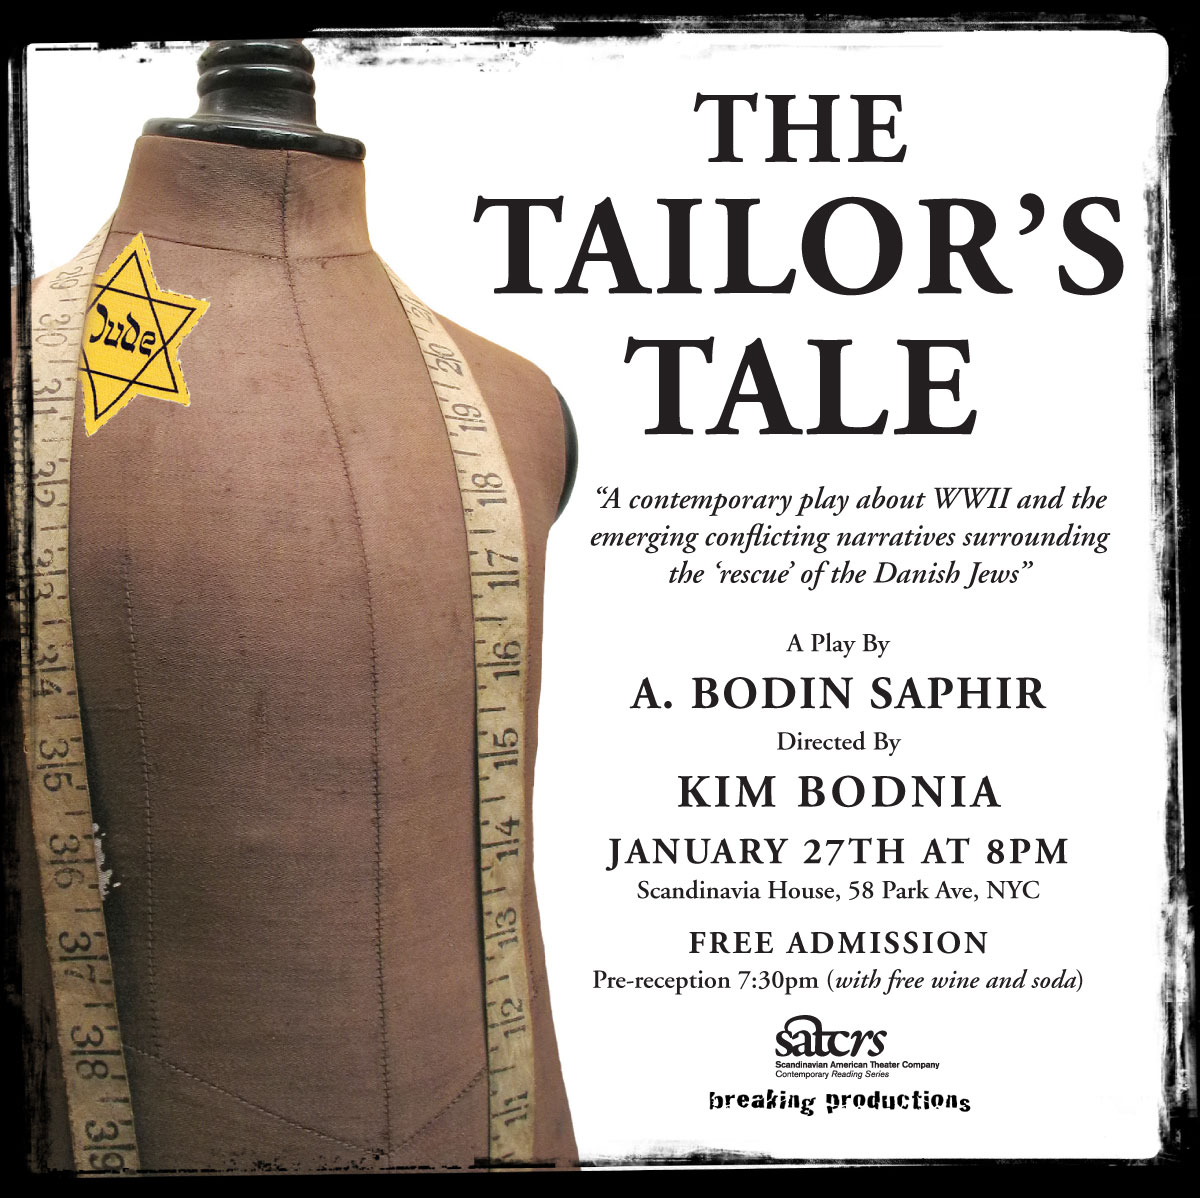 Come See 'The Tailor's Tale' Tonight at Scandinavia House